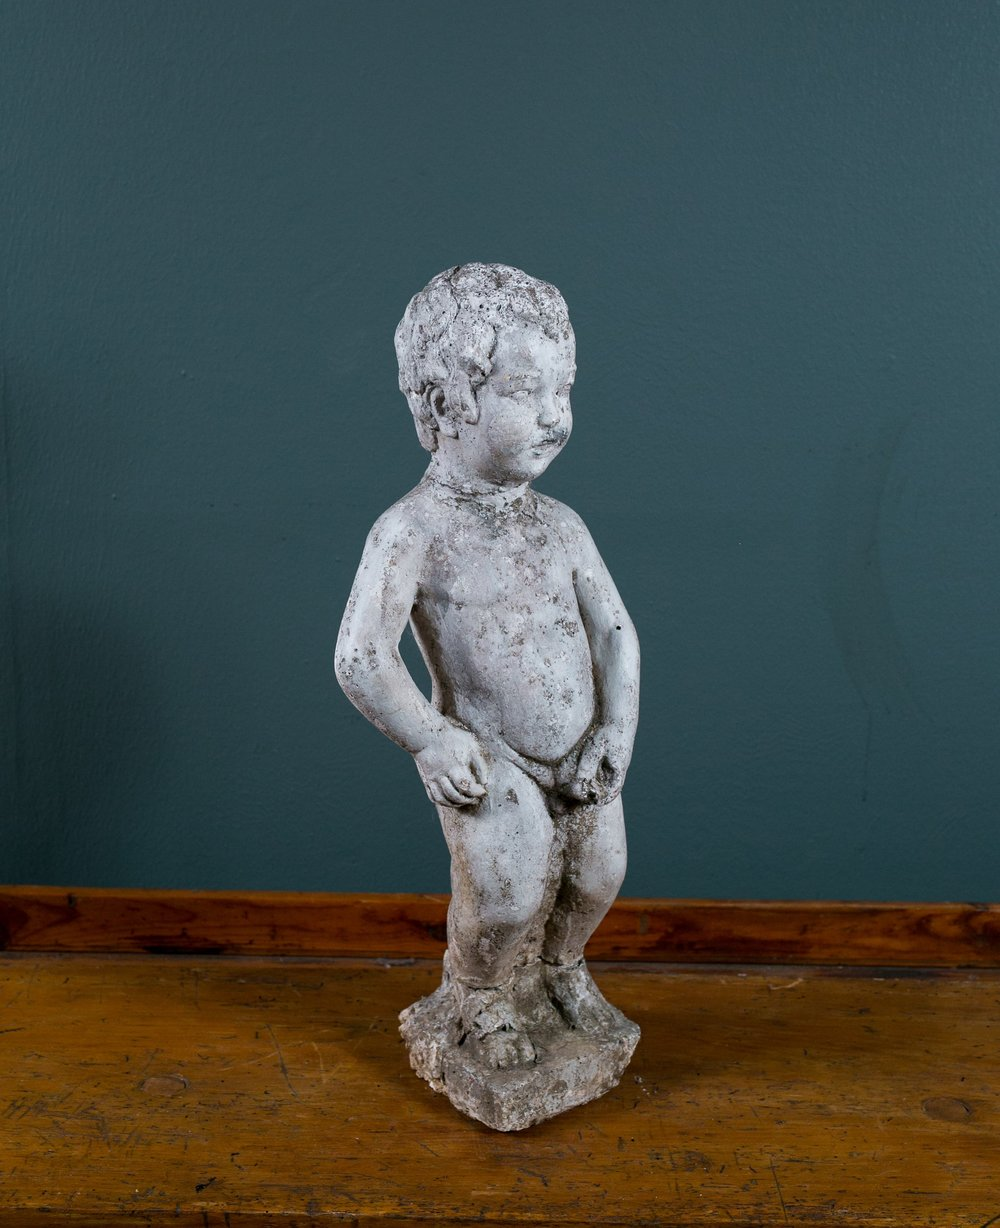 Antique Concrete Garden Statue of Nude Boy from Belgium, circa 1900